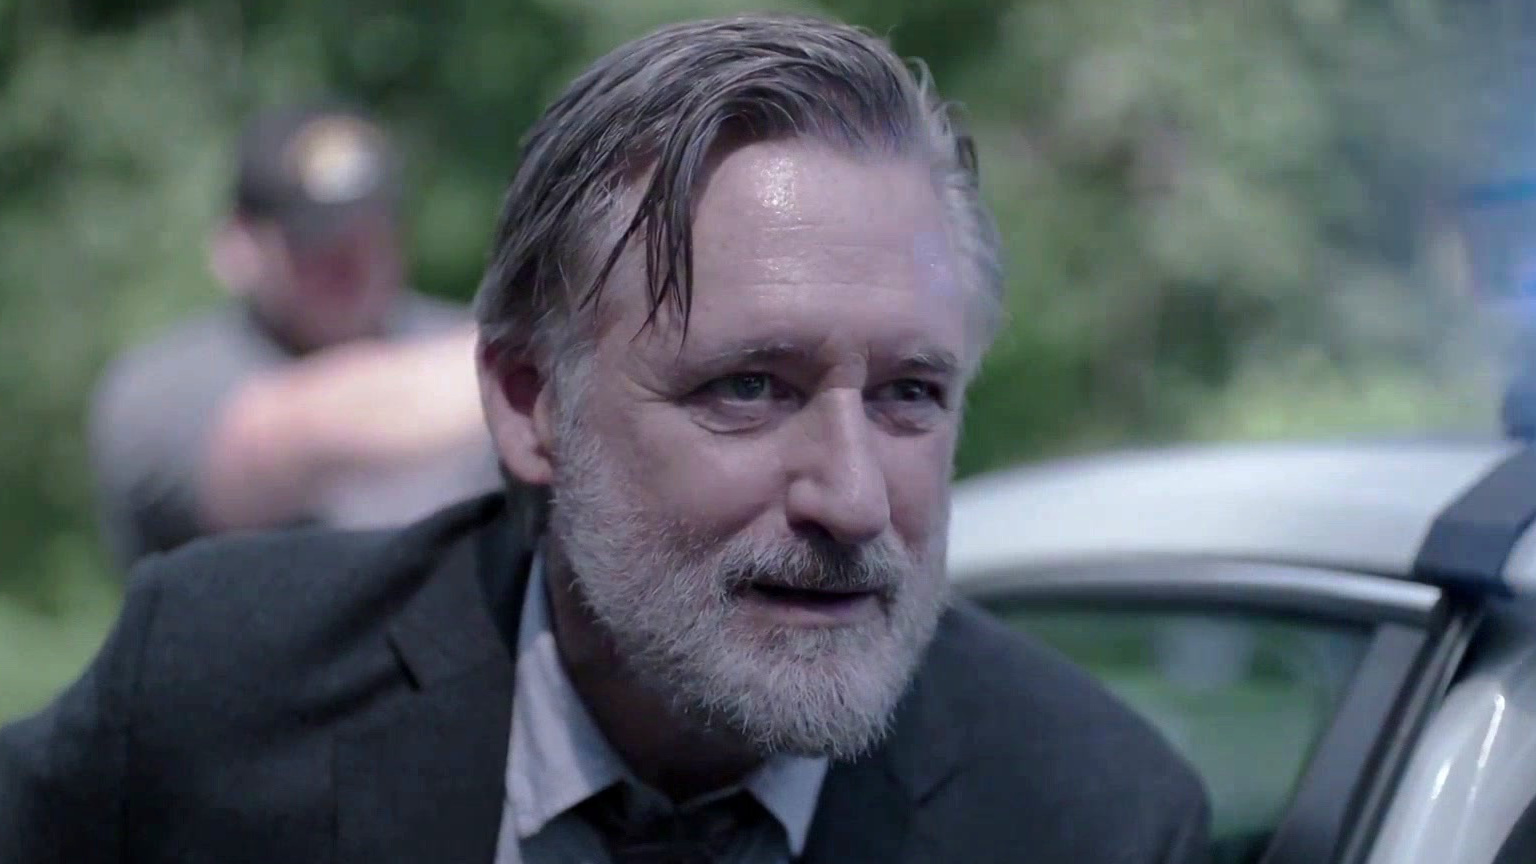 The Sinner: Ambrose Approaches A Possibly Armed Suspect